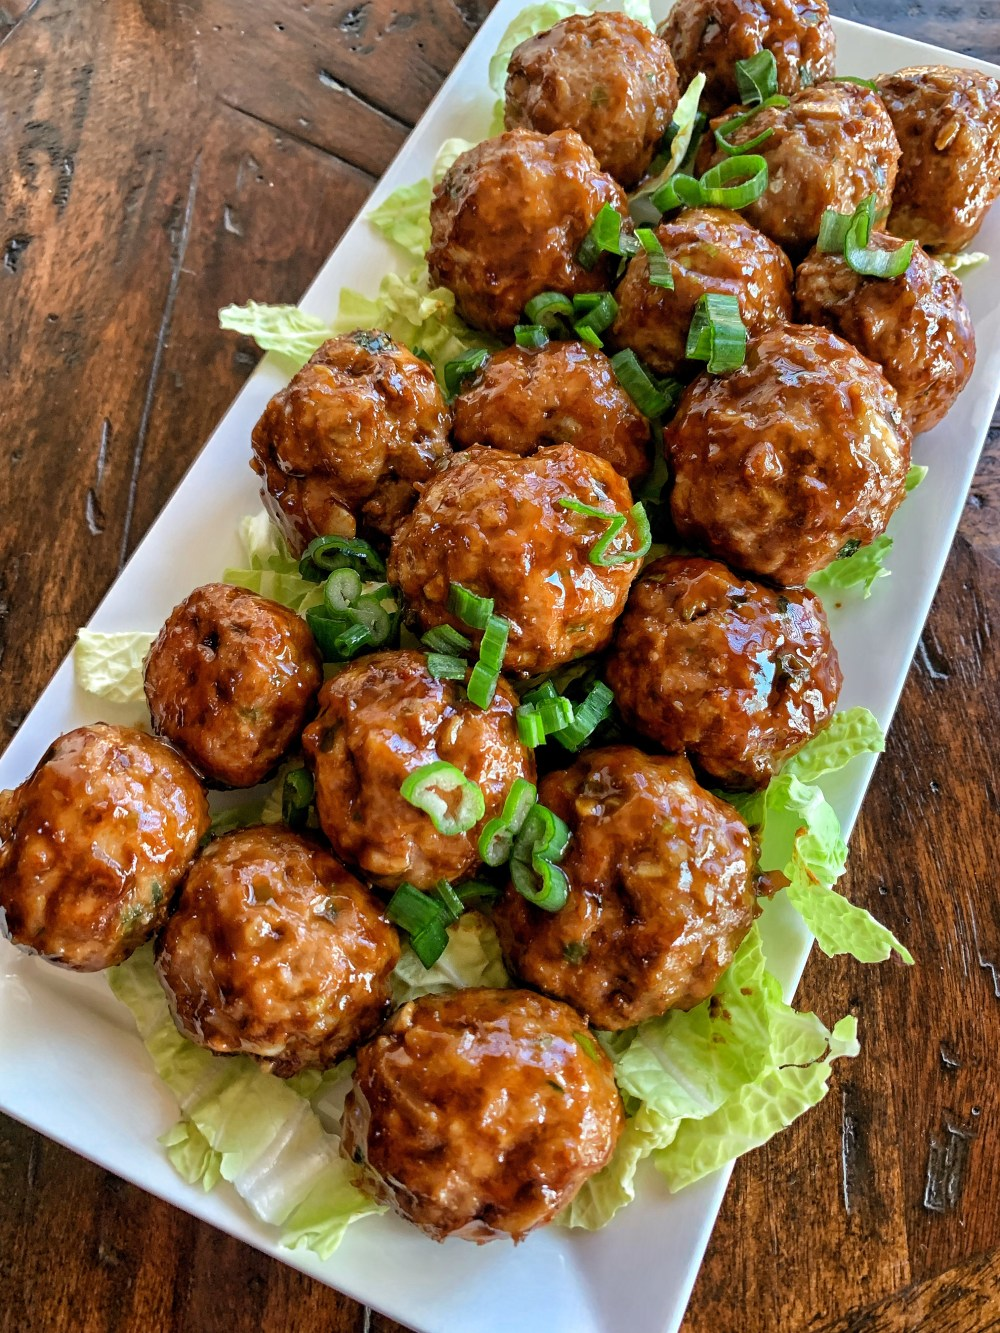 Overhead shot of meatballs made with pork and peanuts on a white plate with green onions and a glaze.